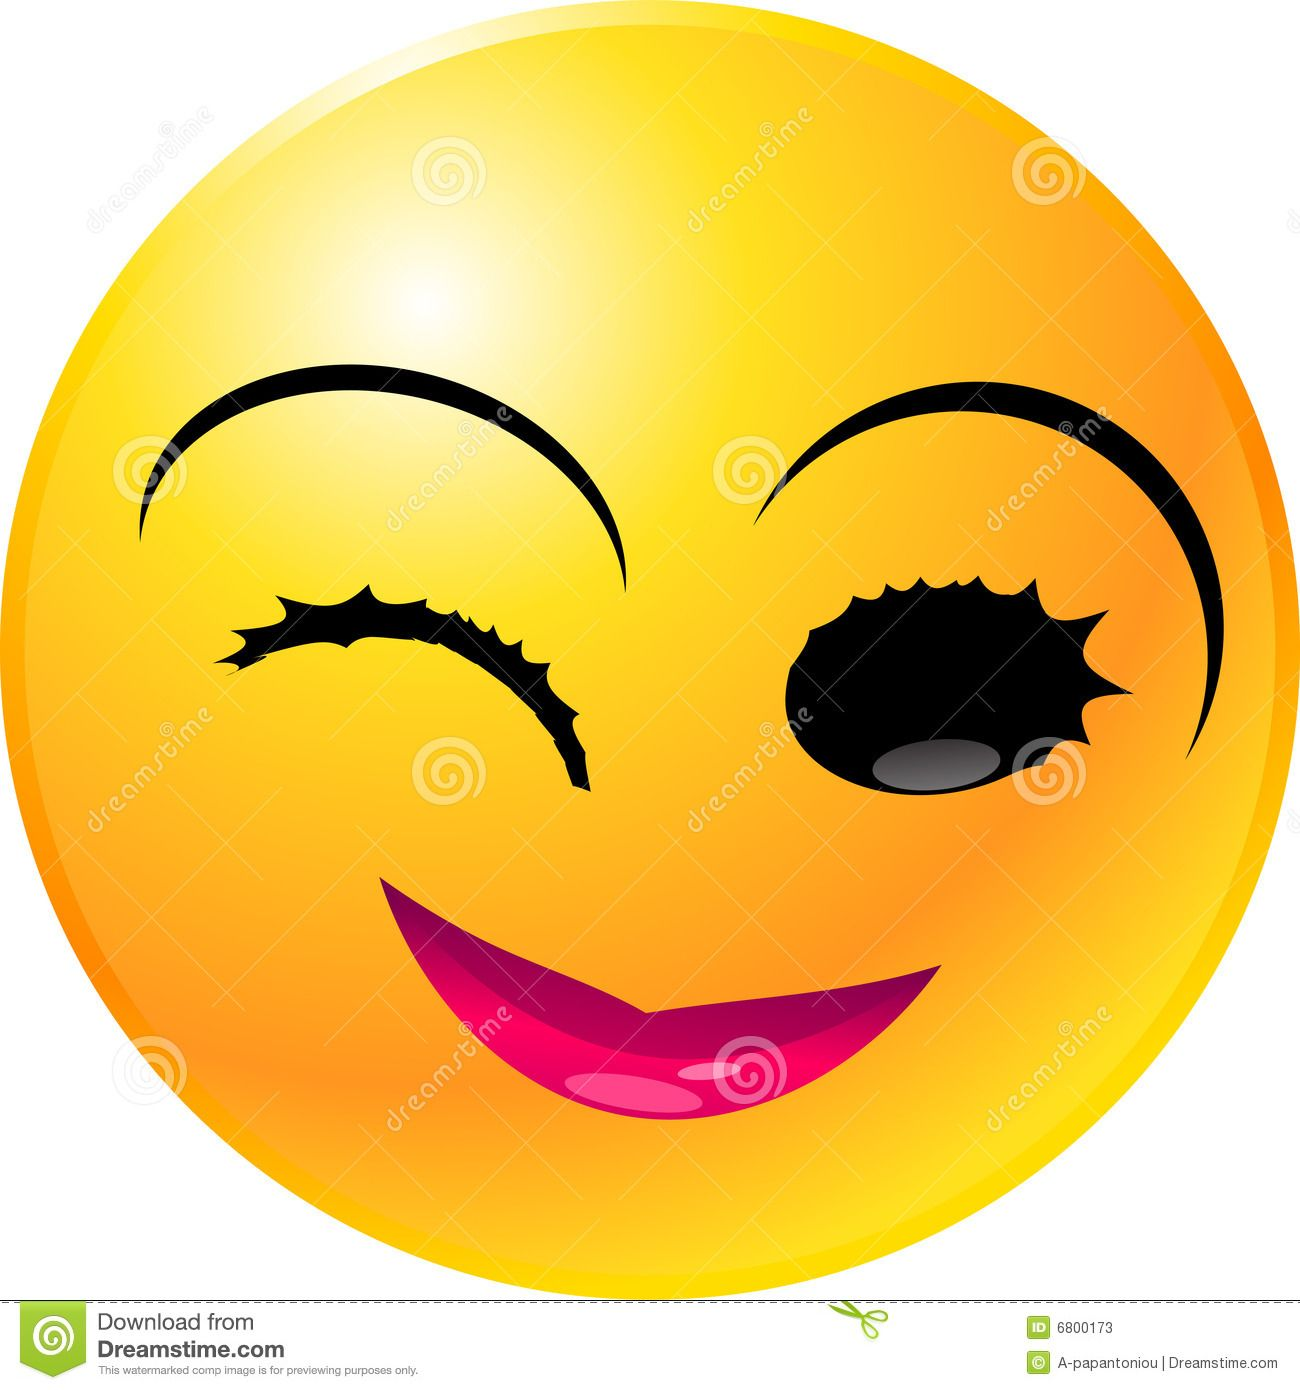 Emoticon Smiley Face Download From Over 48 Million High